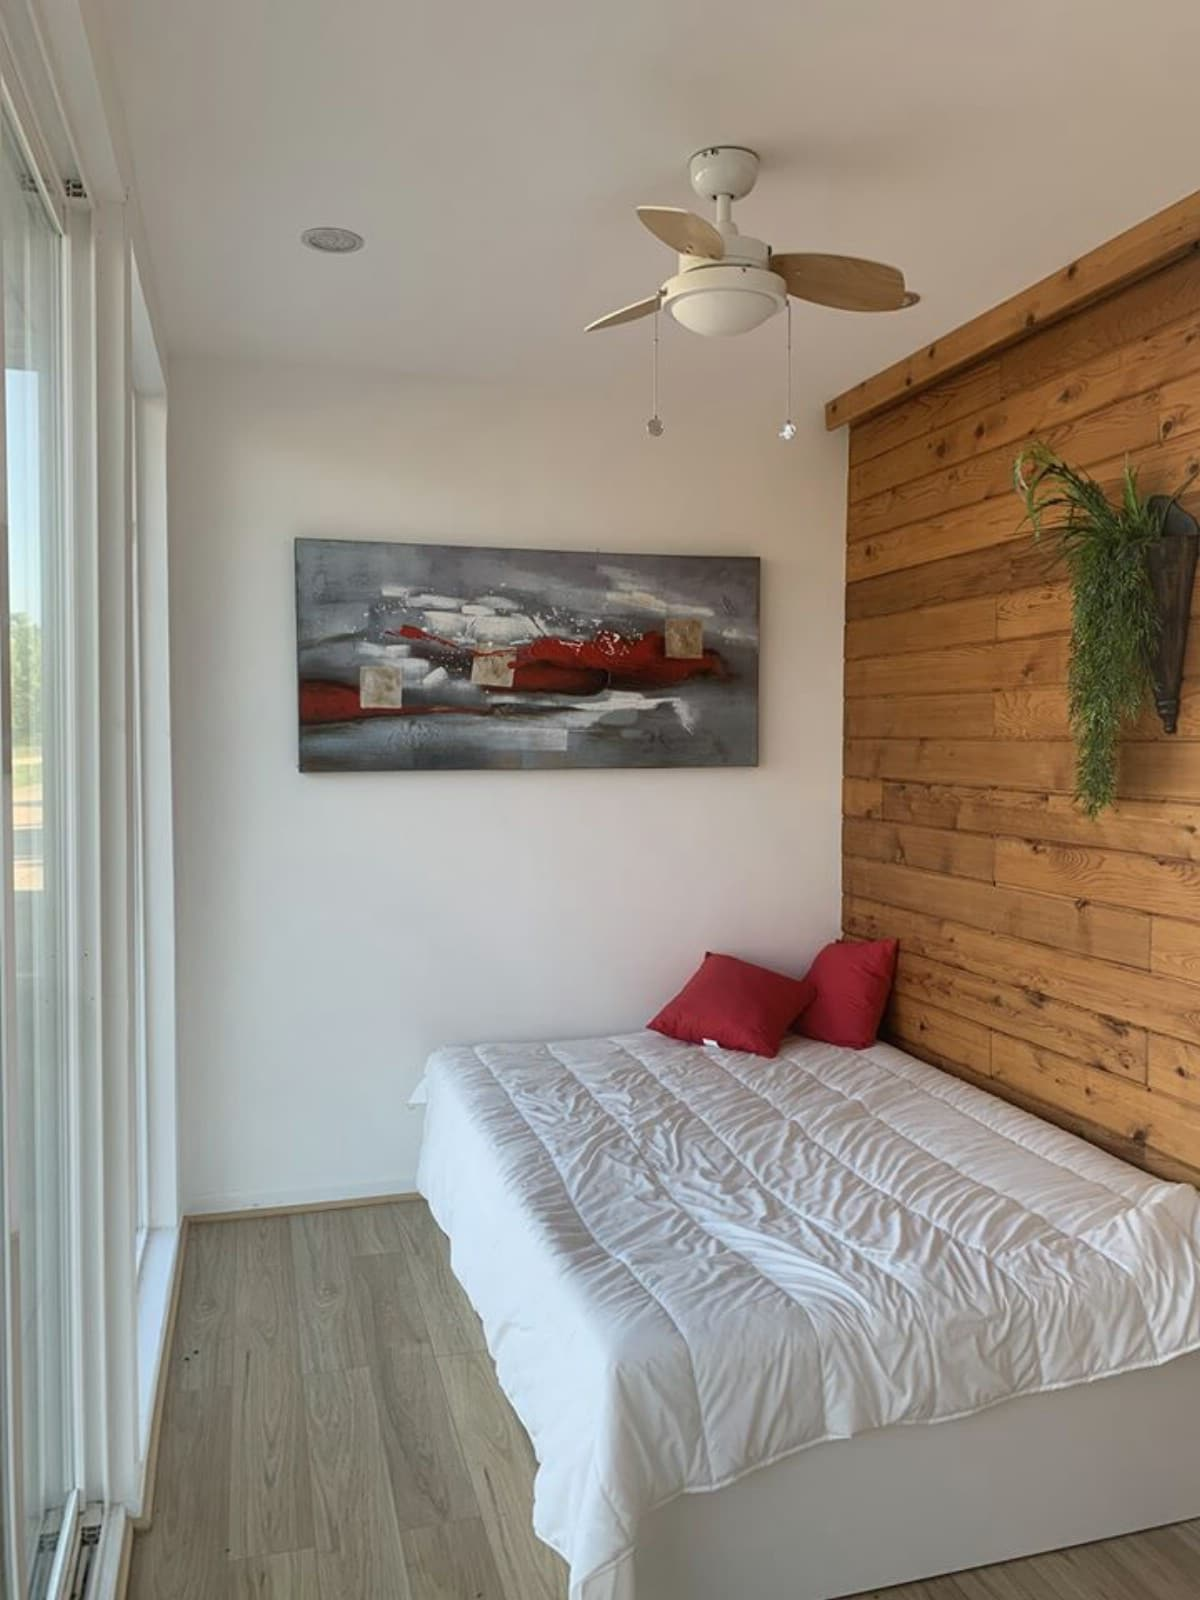 Bed against wood paneled wall